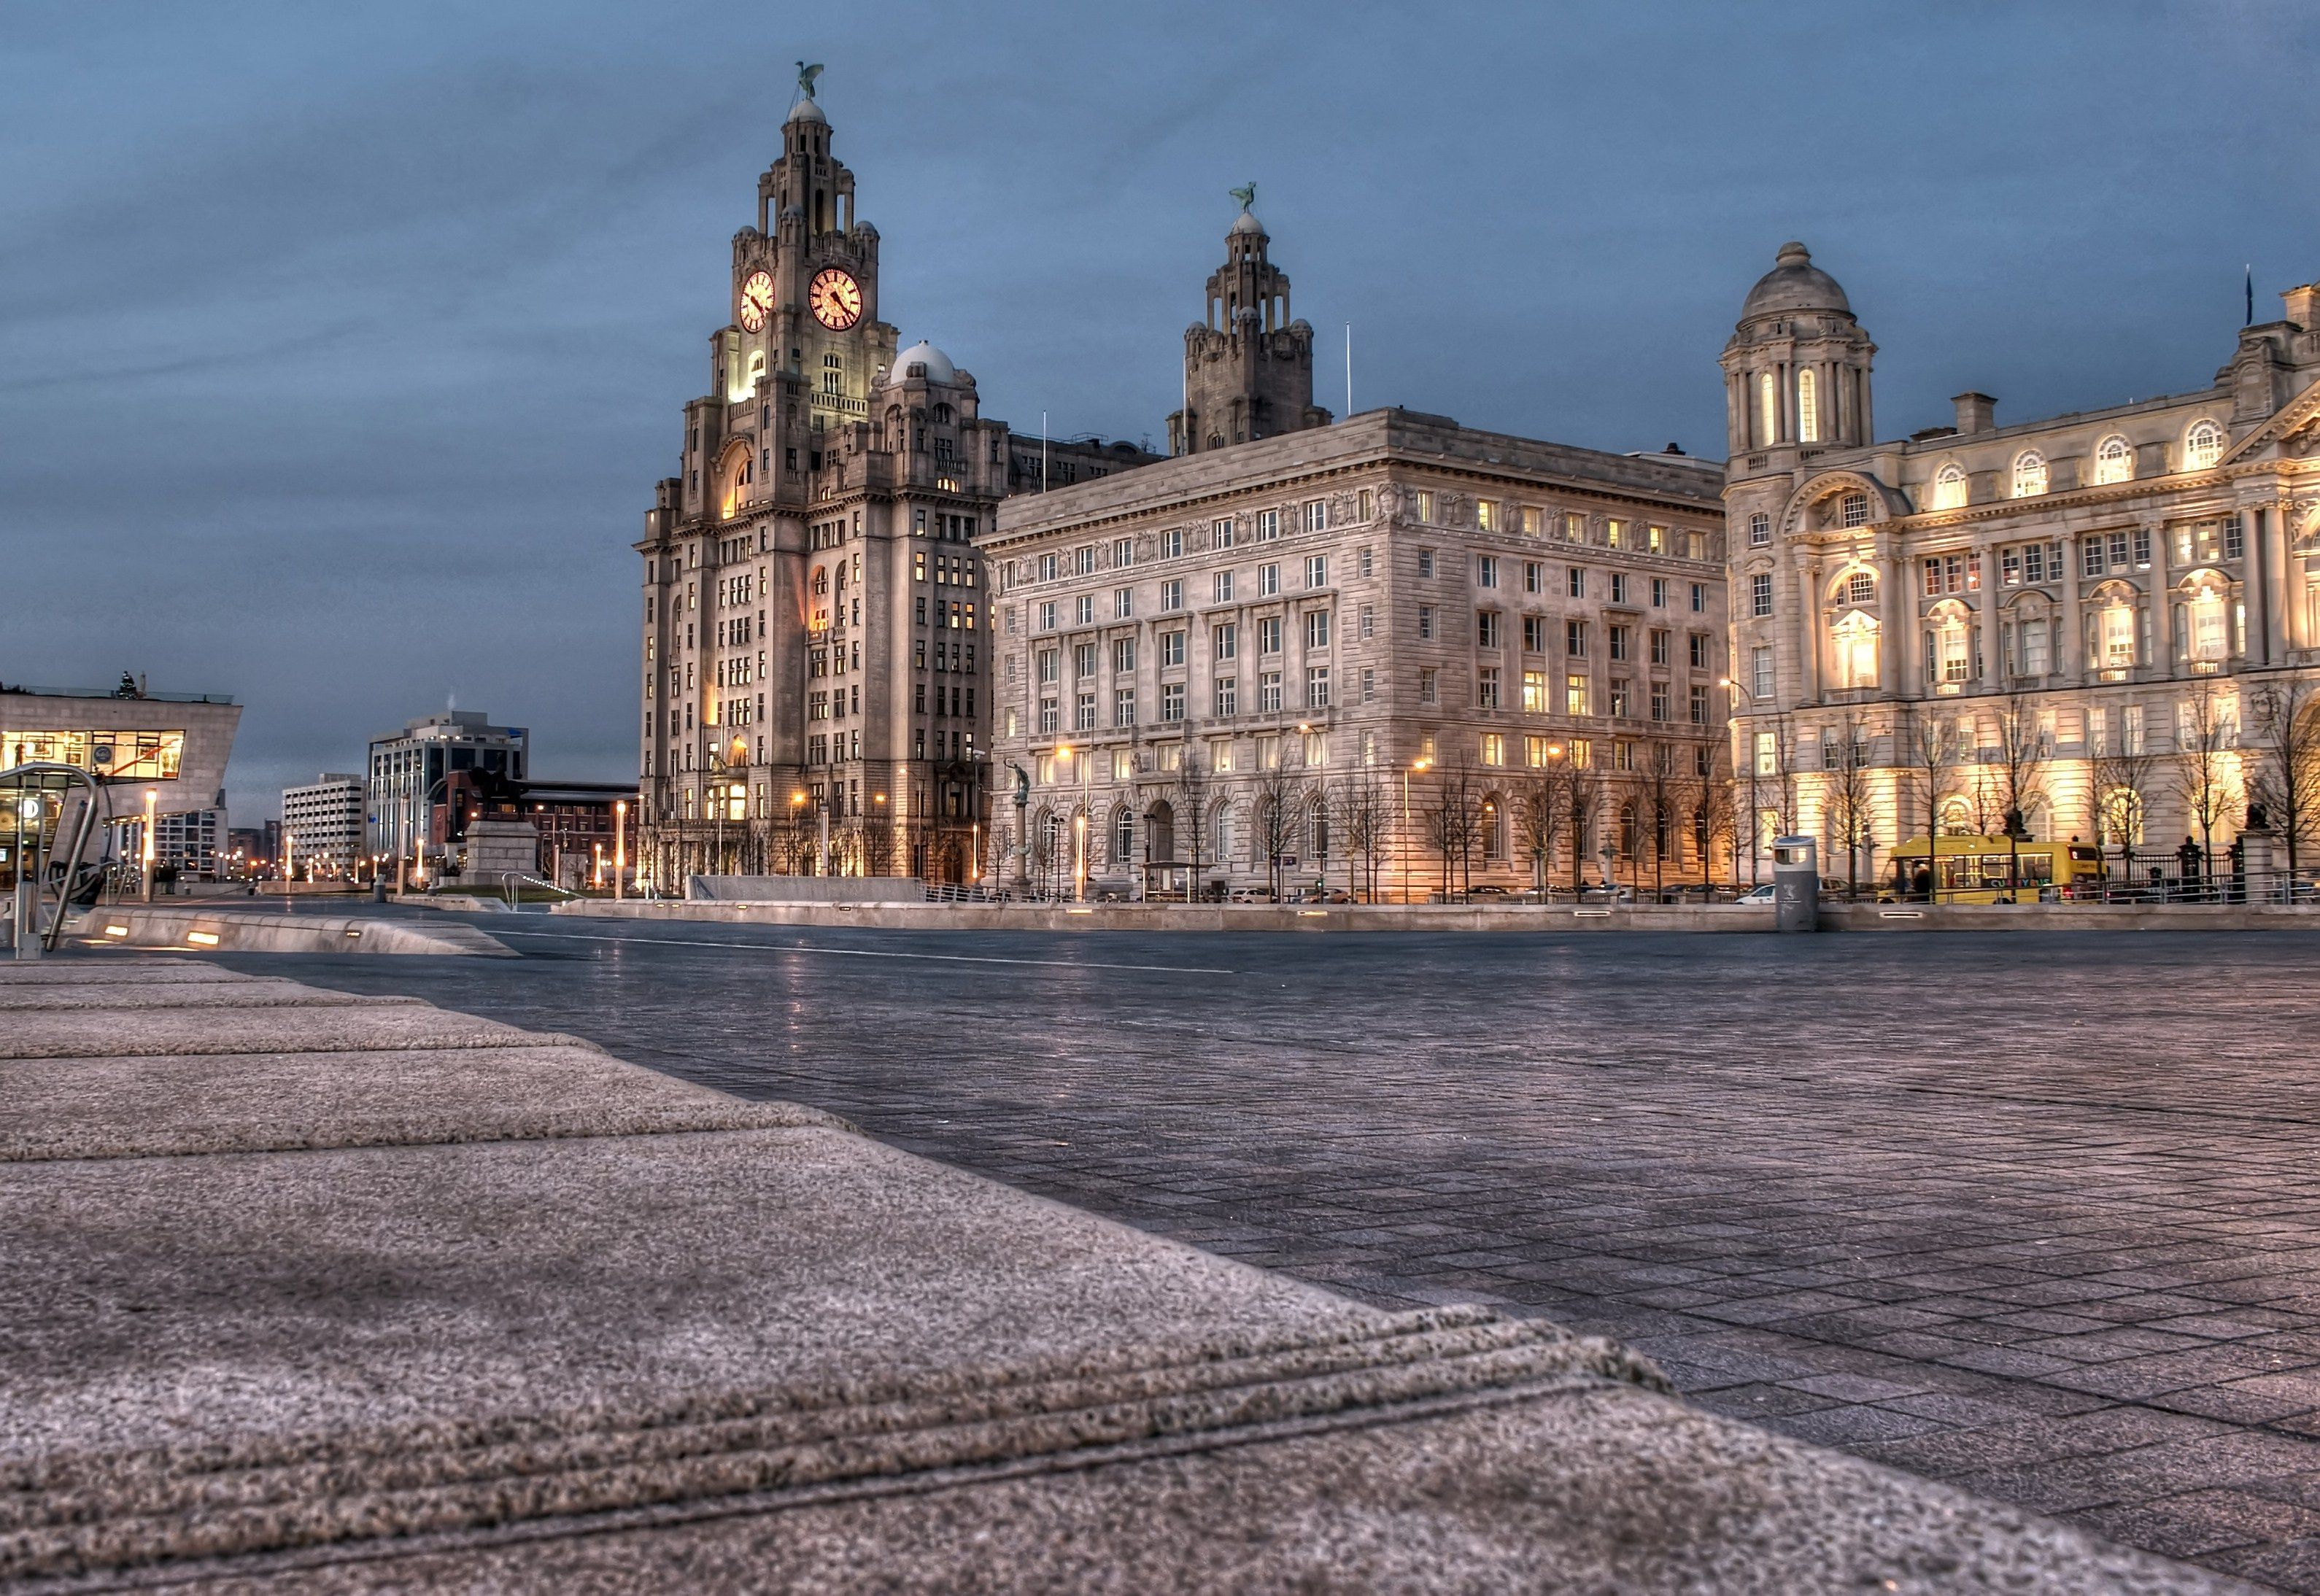 Cunard Building And Port Of Liverpool Building At Dusk